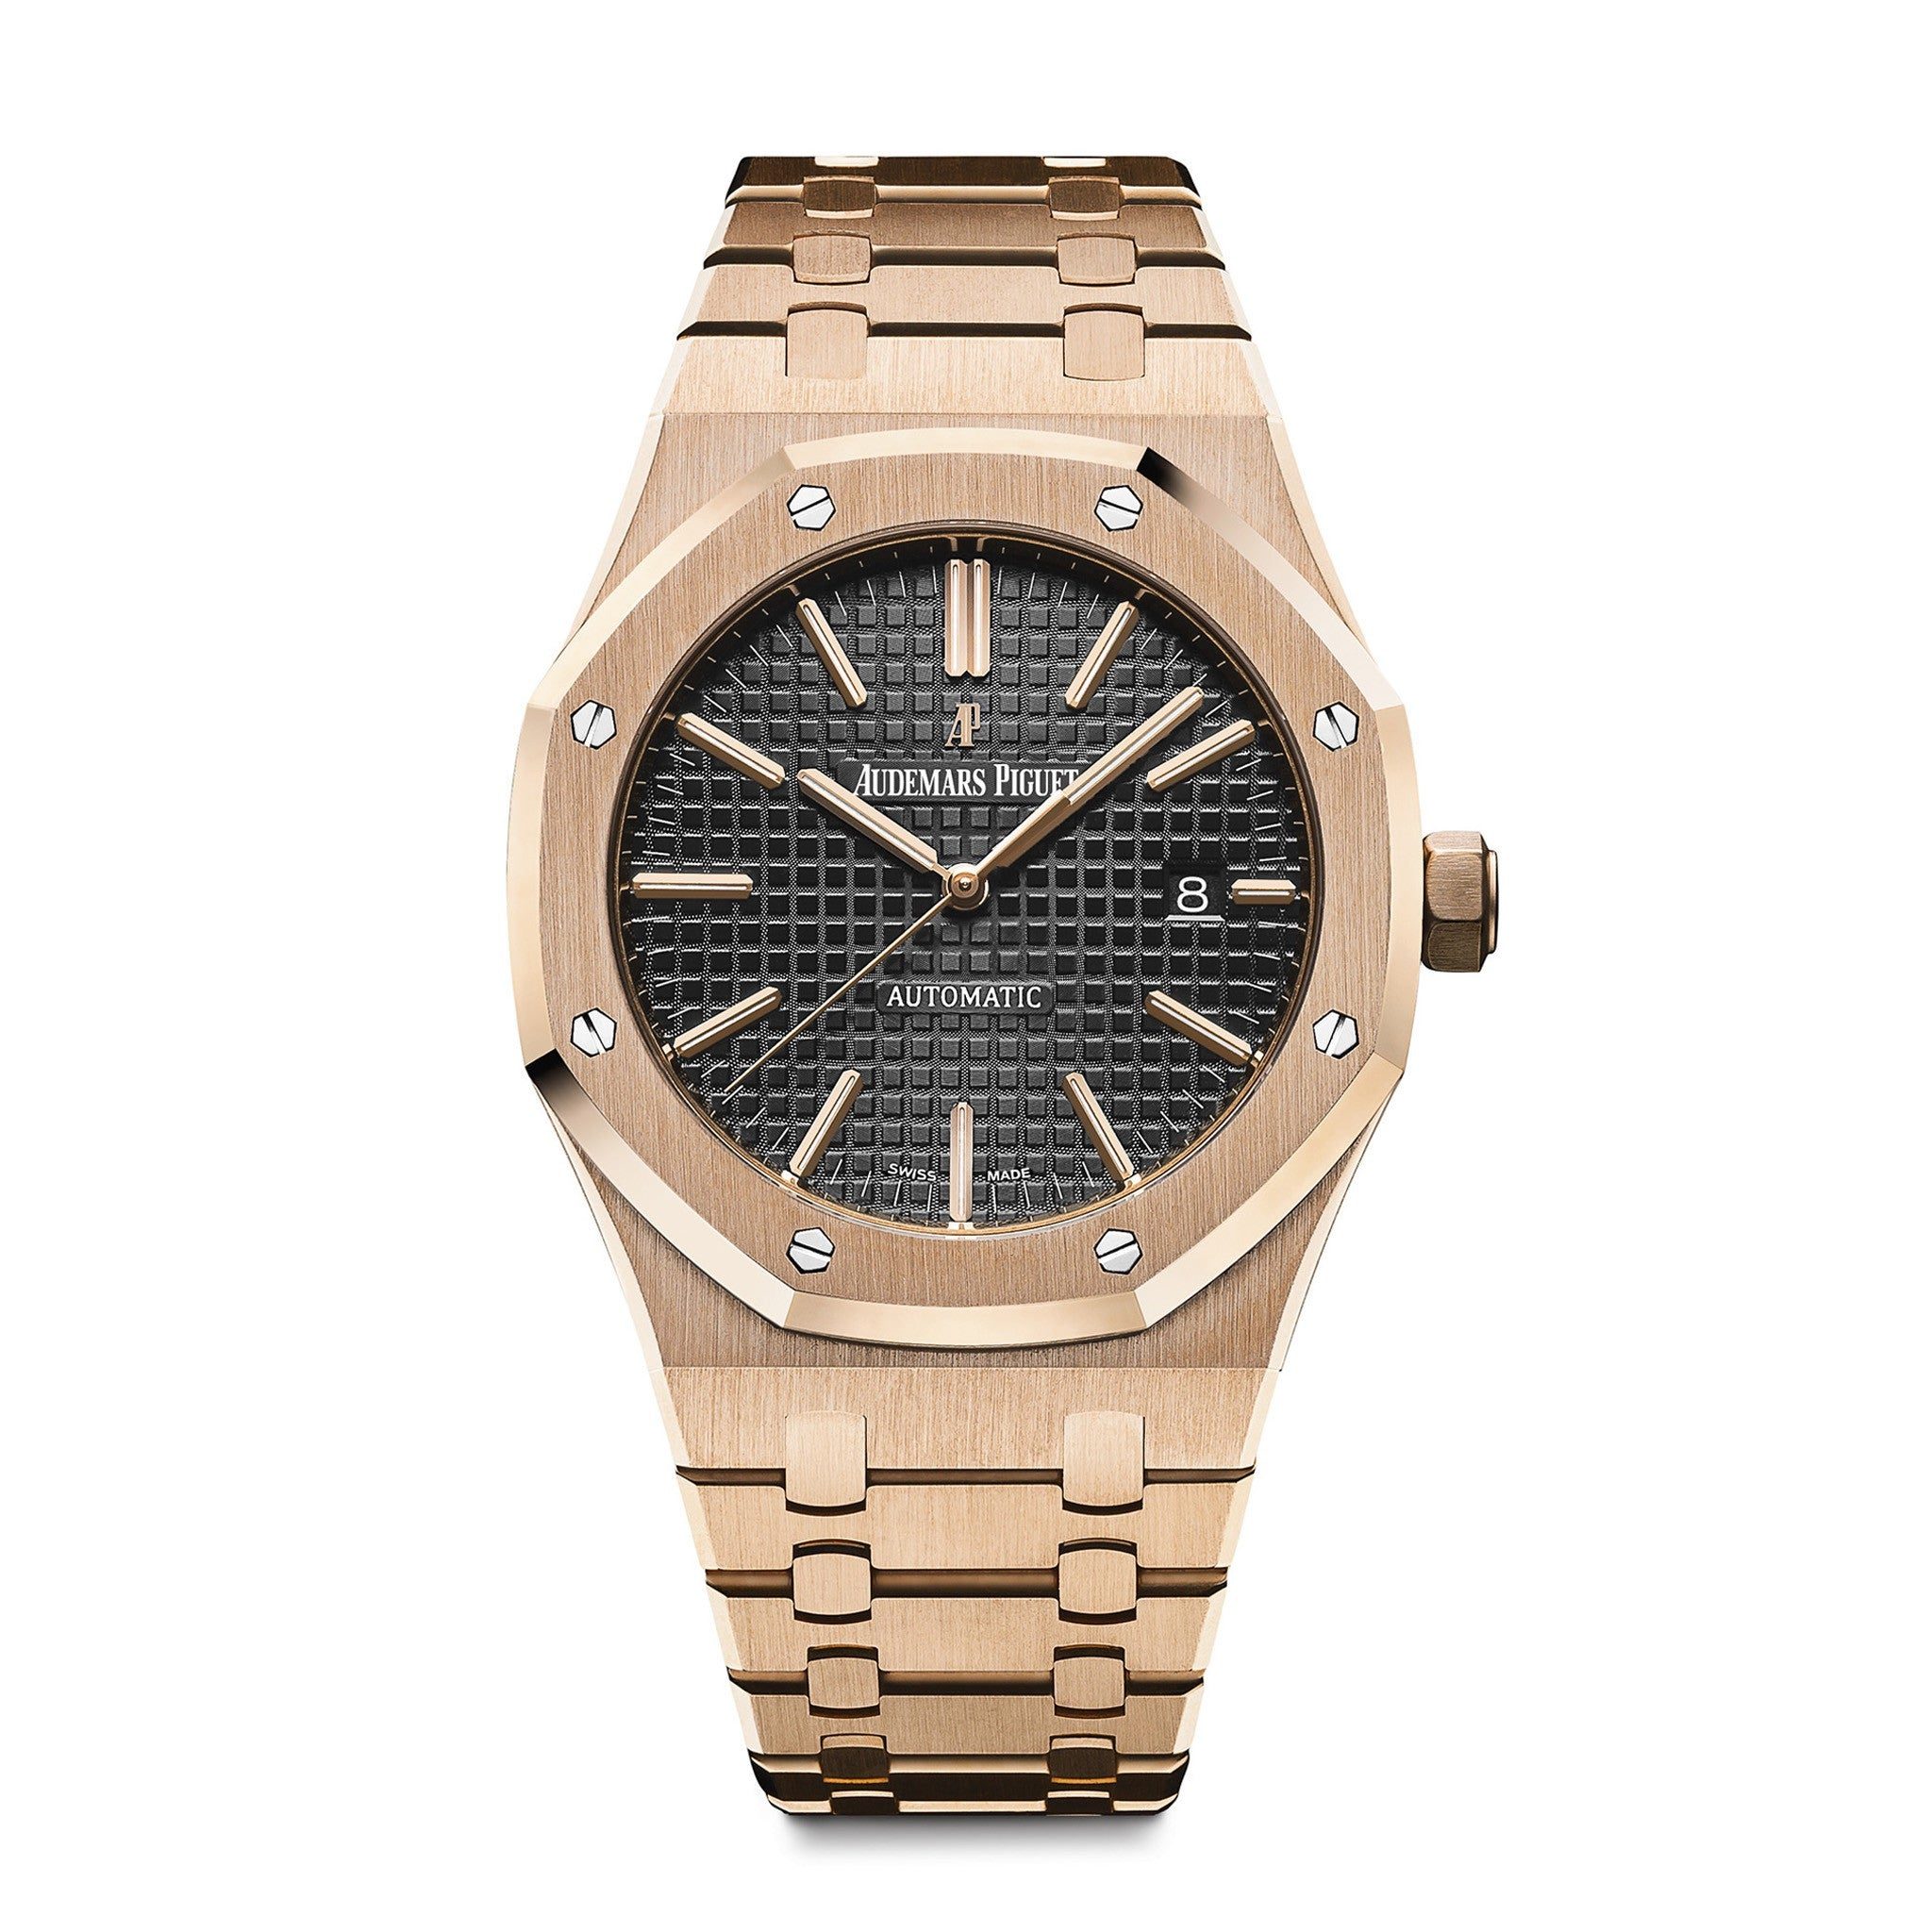 Royal Oak Selfwinding 15400OR.OO.1220OR.01 - Audemars Piguet